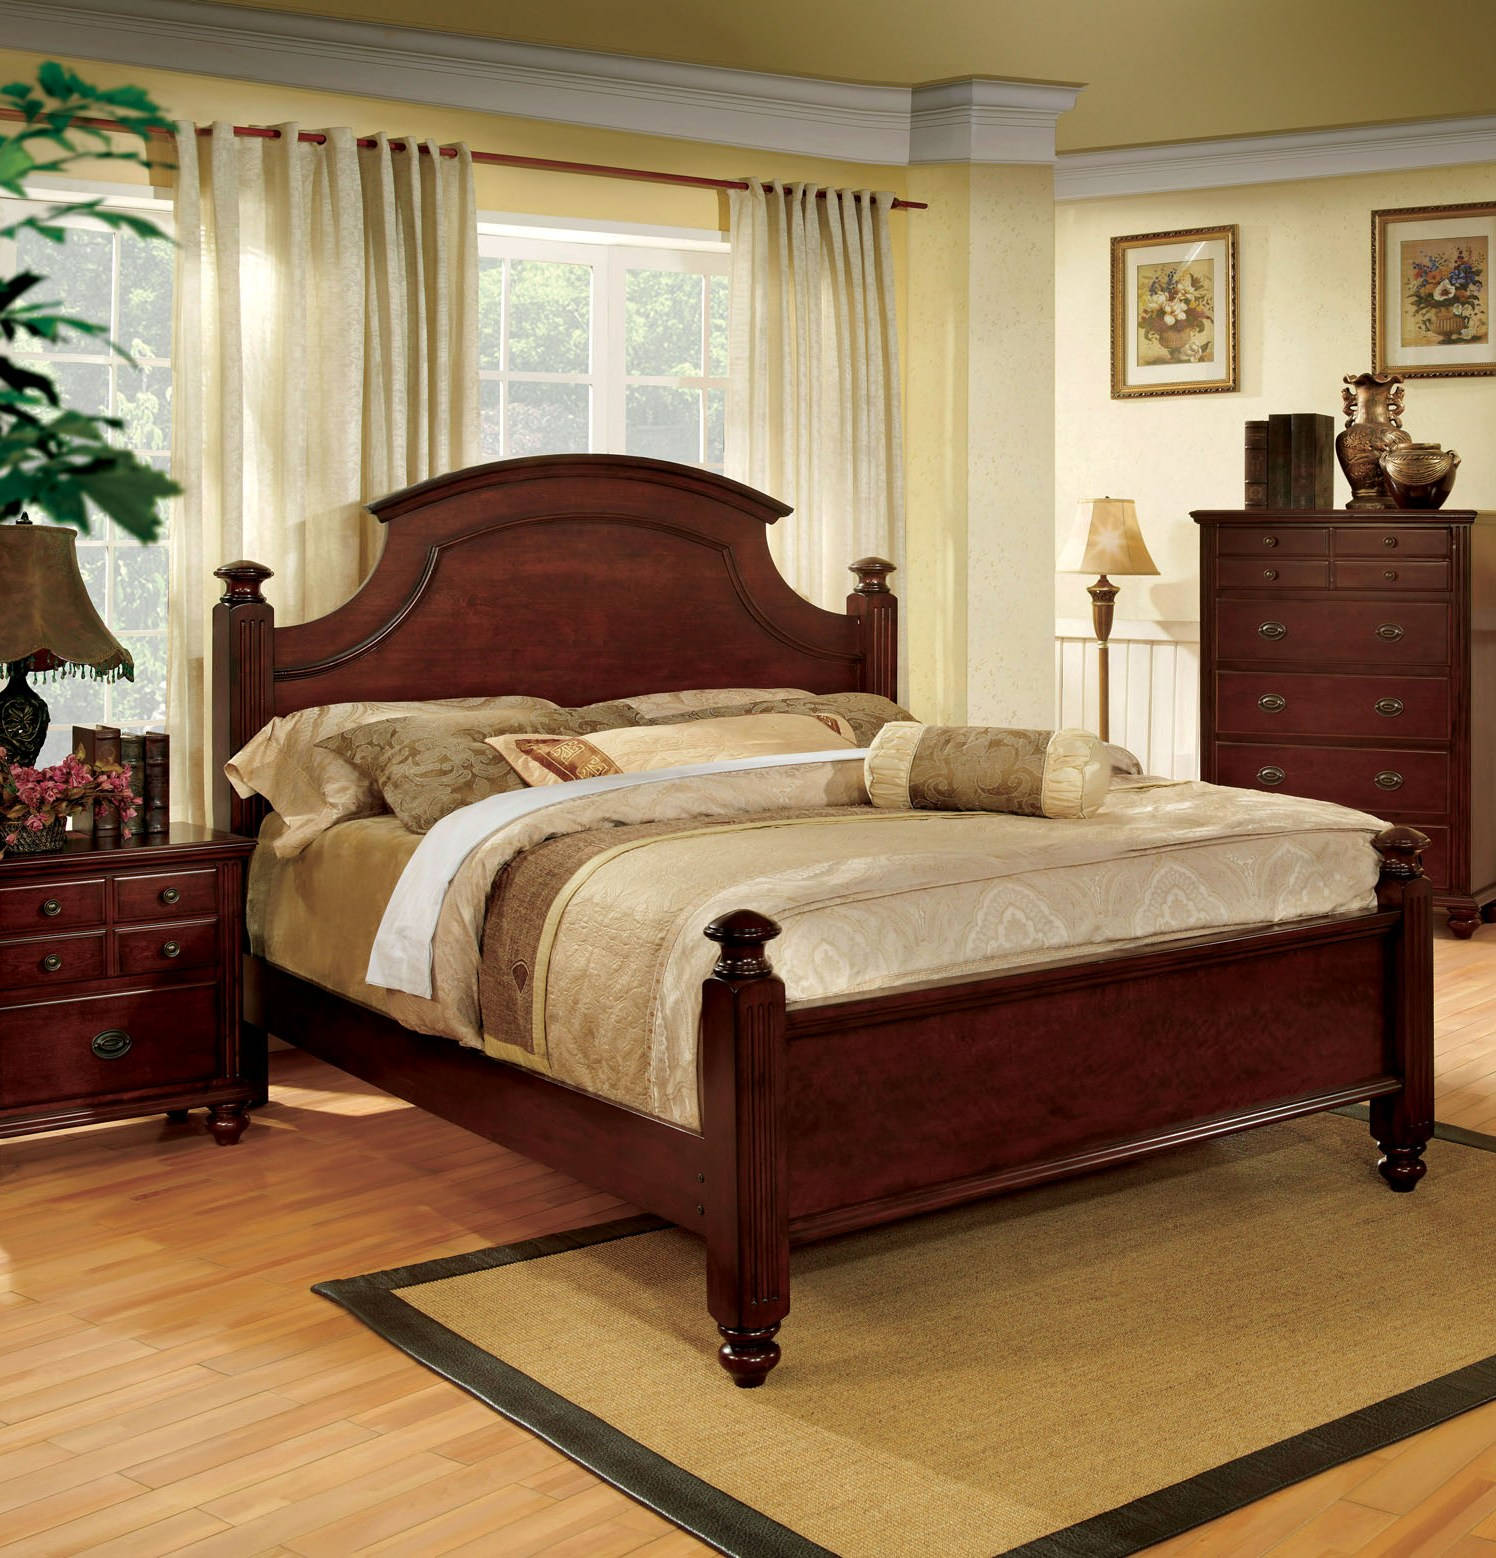 Furniture of america gabrielle ii cal king bed the for Furniture of america king bed